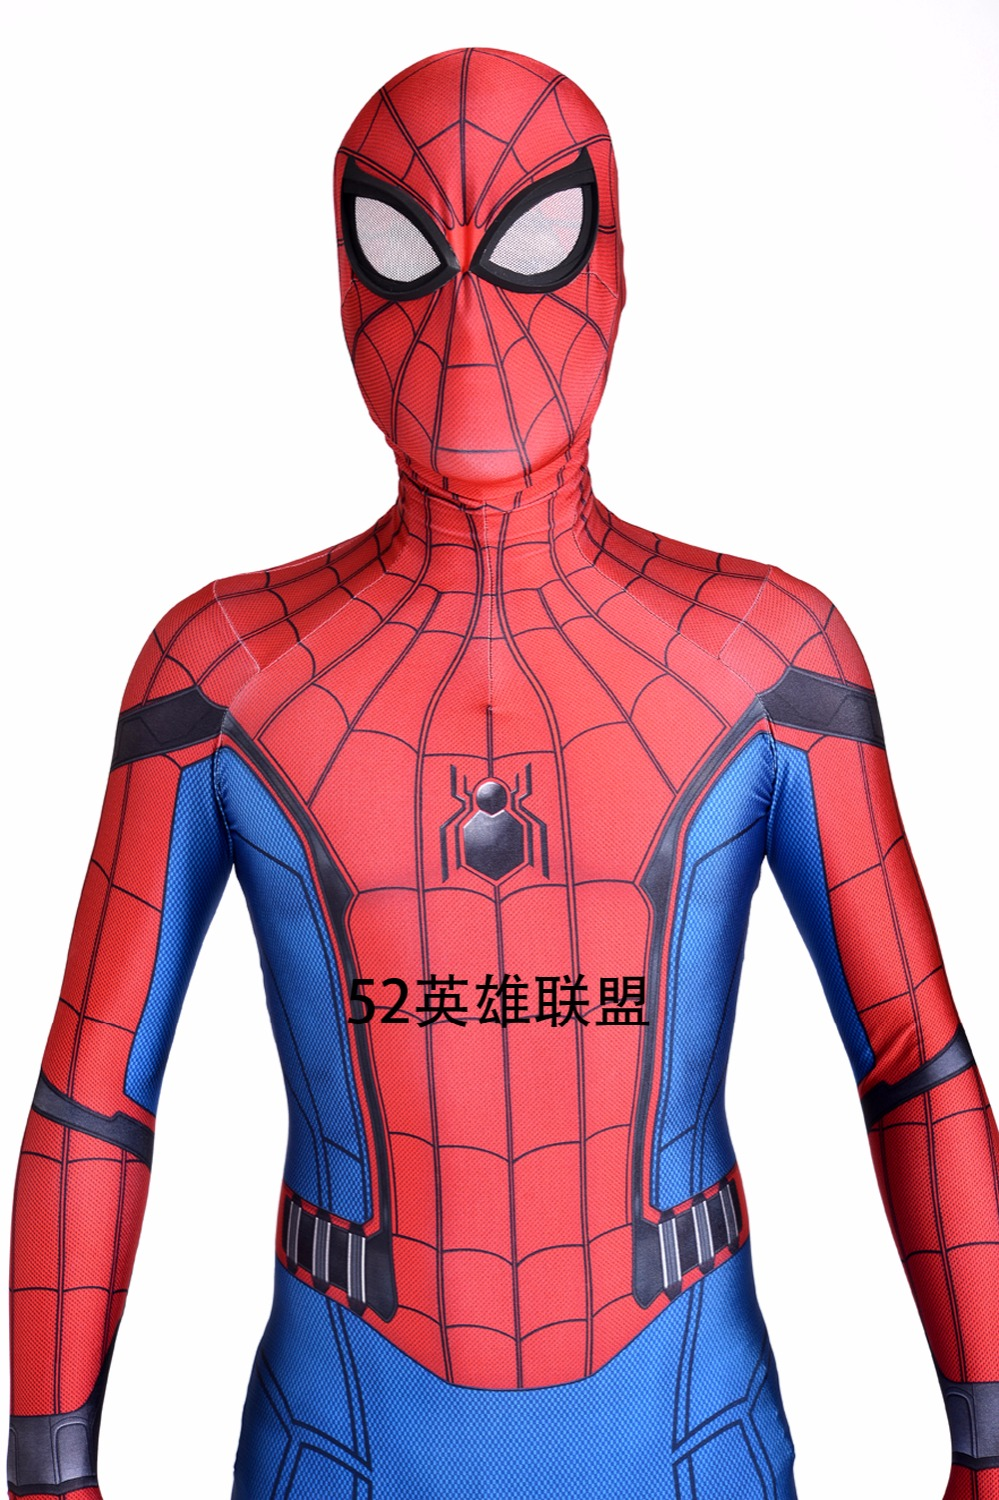 Homecoming Spiderman Costume 2017 Moive Spider-man Costume Halloween Cosplay Costume